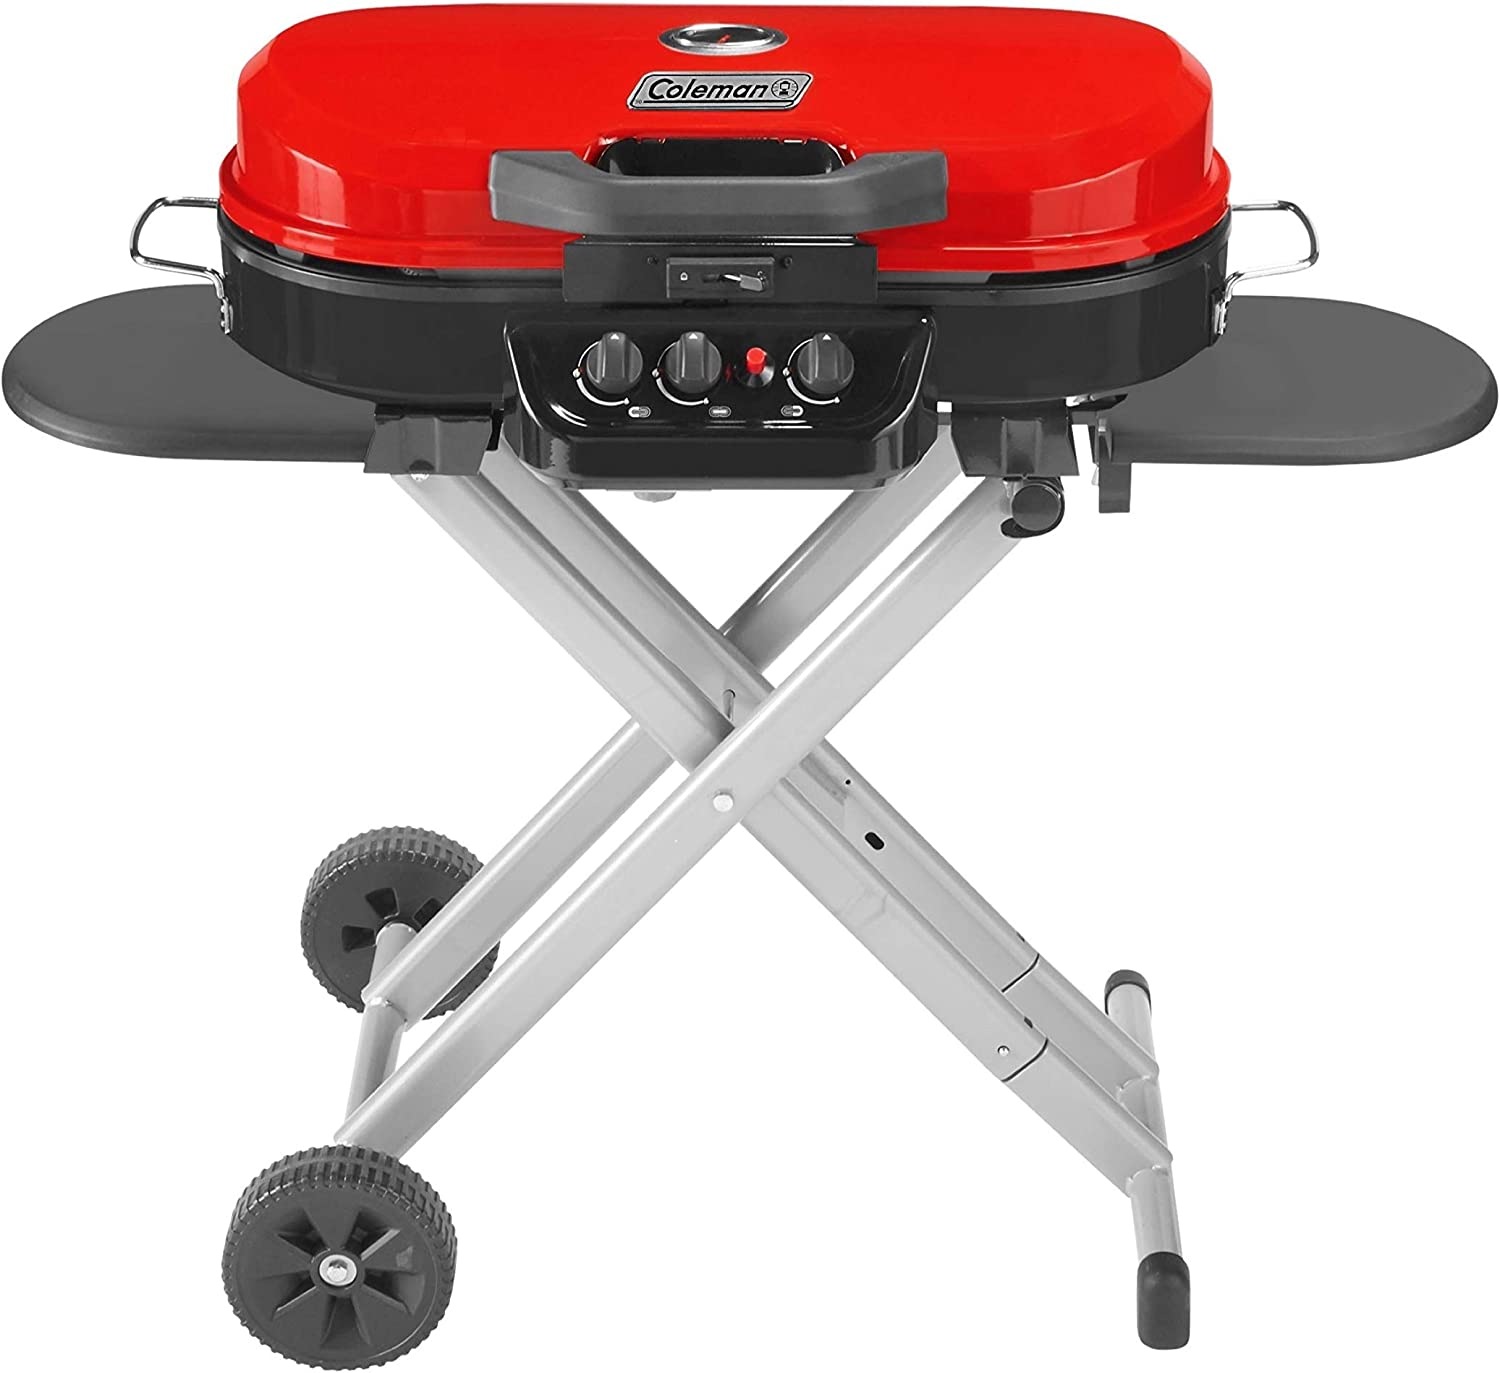 An image of the Coleman propane grill on a stand, the grill is in colors red and black combination with fuel controllers at the center.